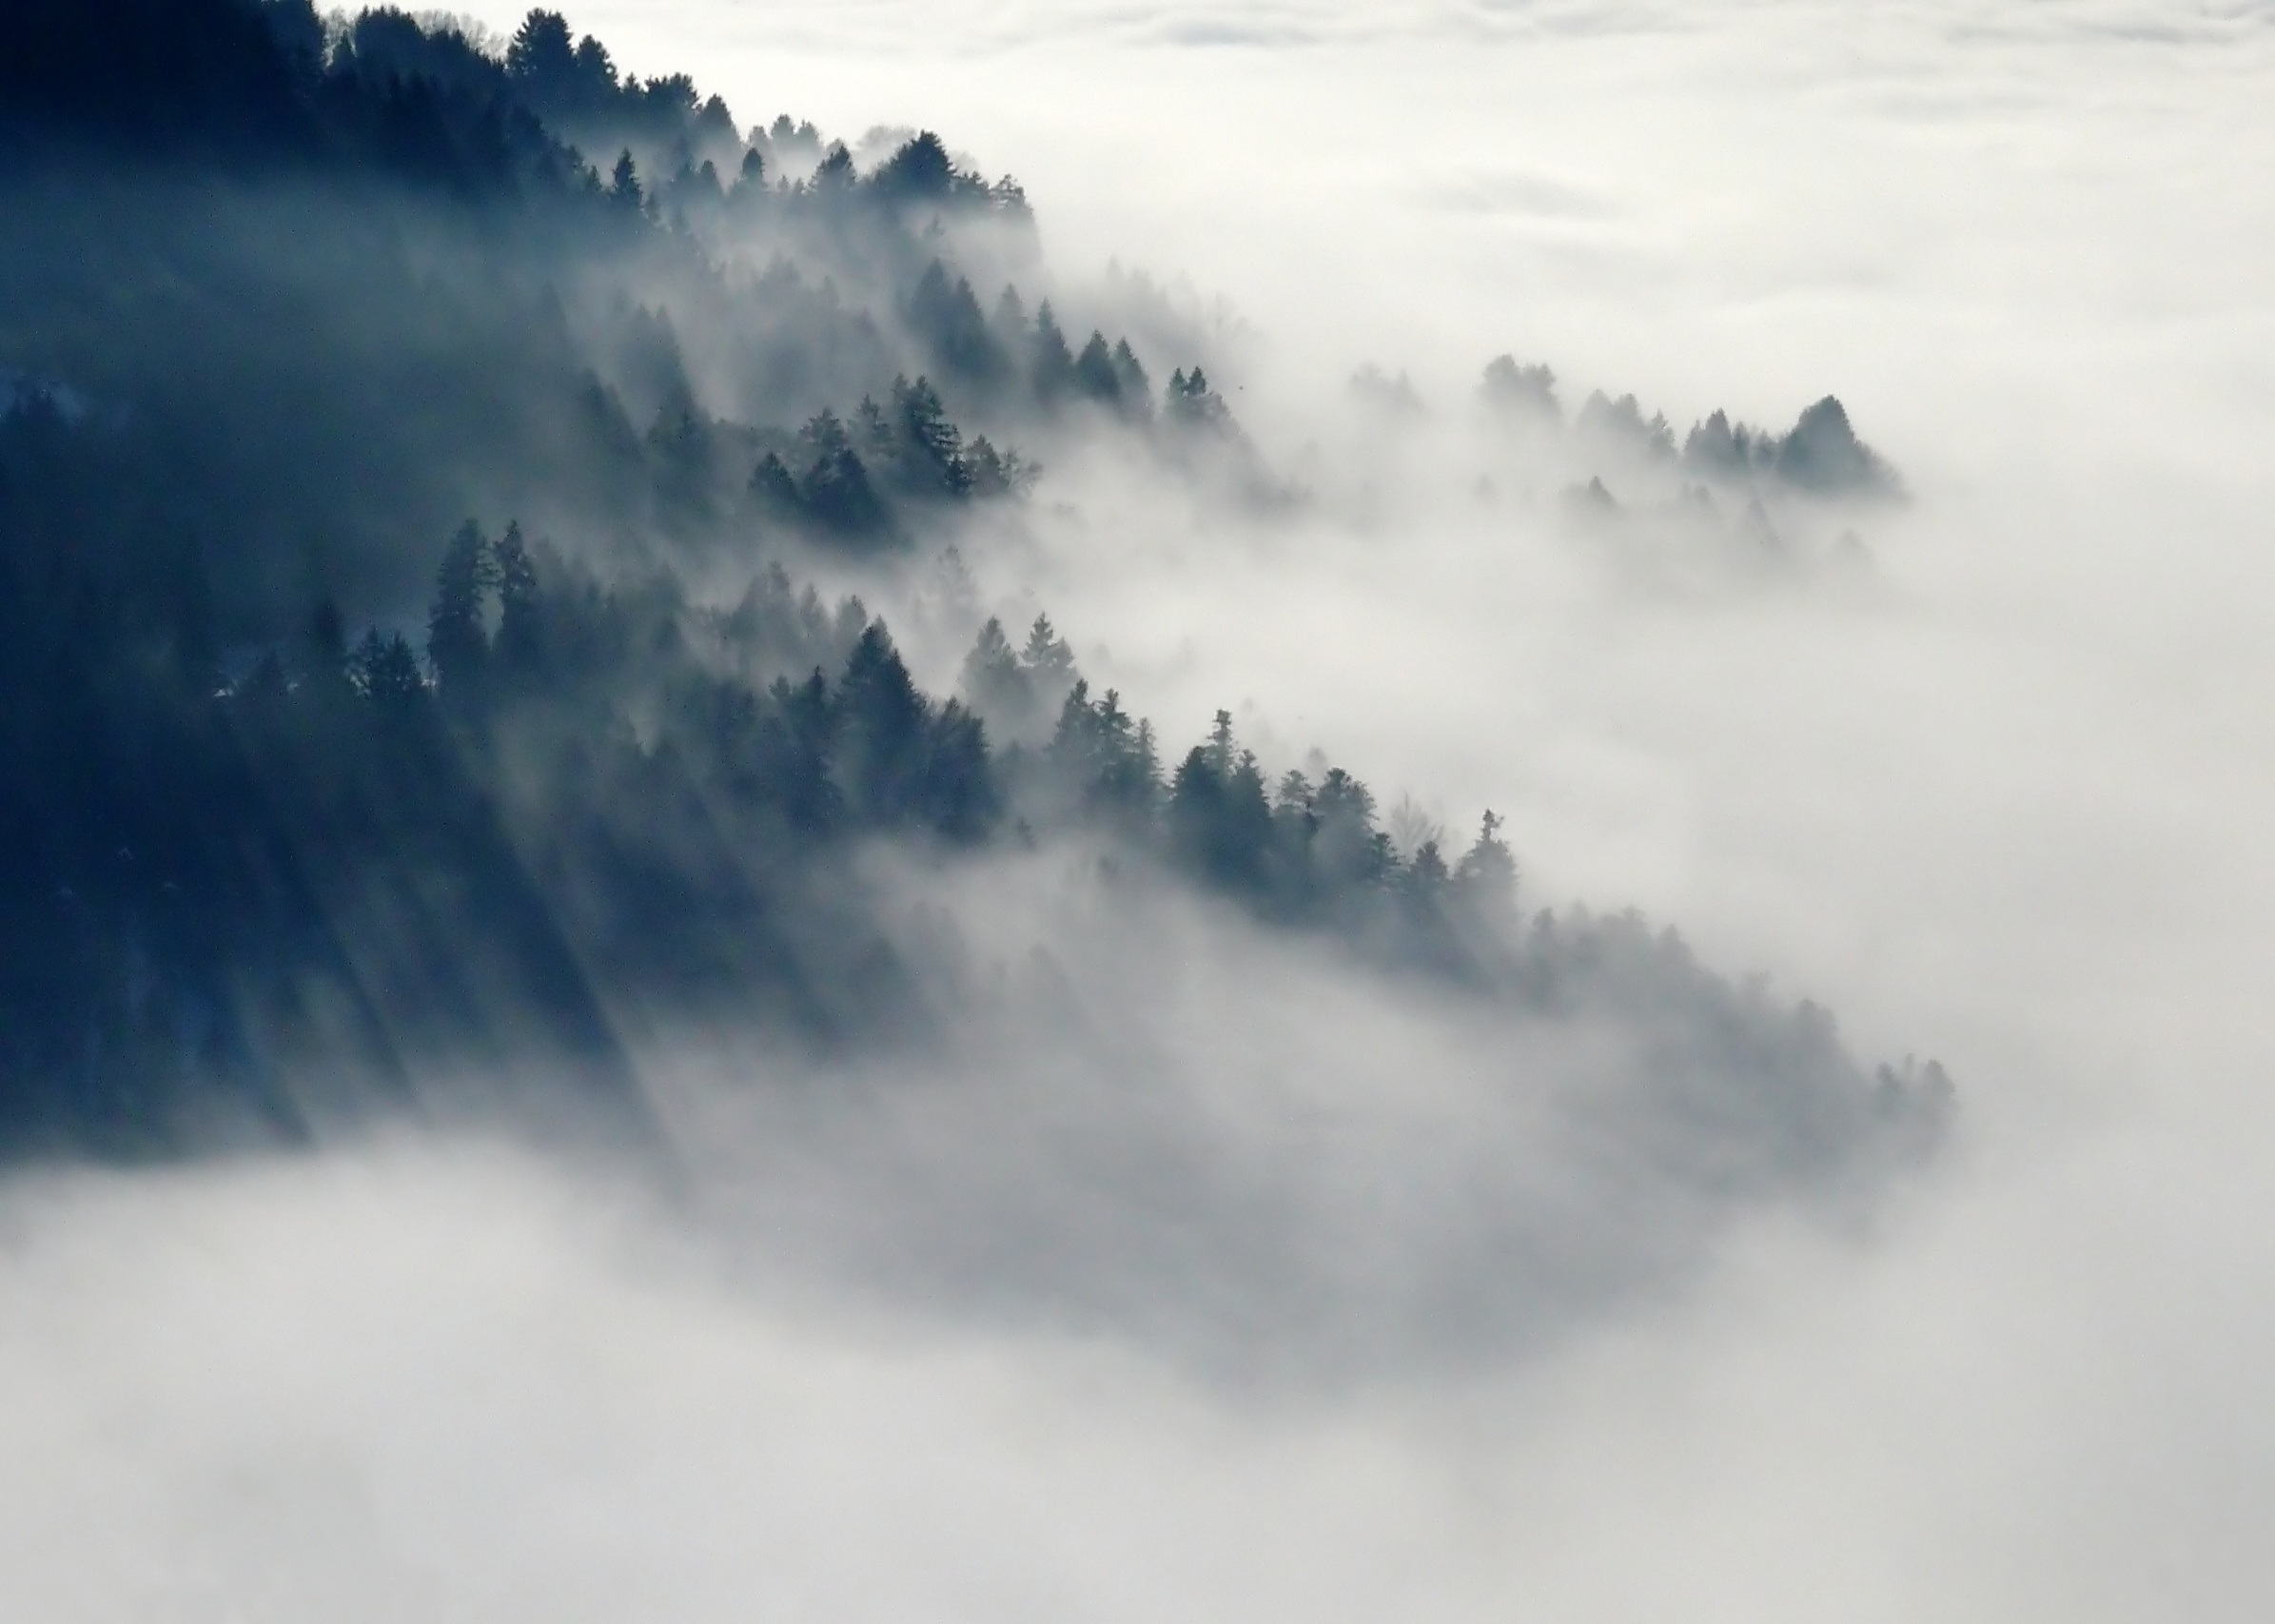 Hd Love Wallpapers For Mobile Free Download Free Stock Photo Of Fog Foggy Forest